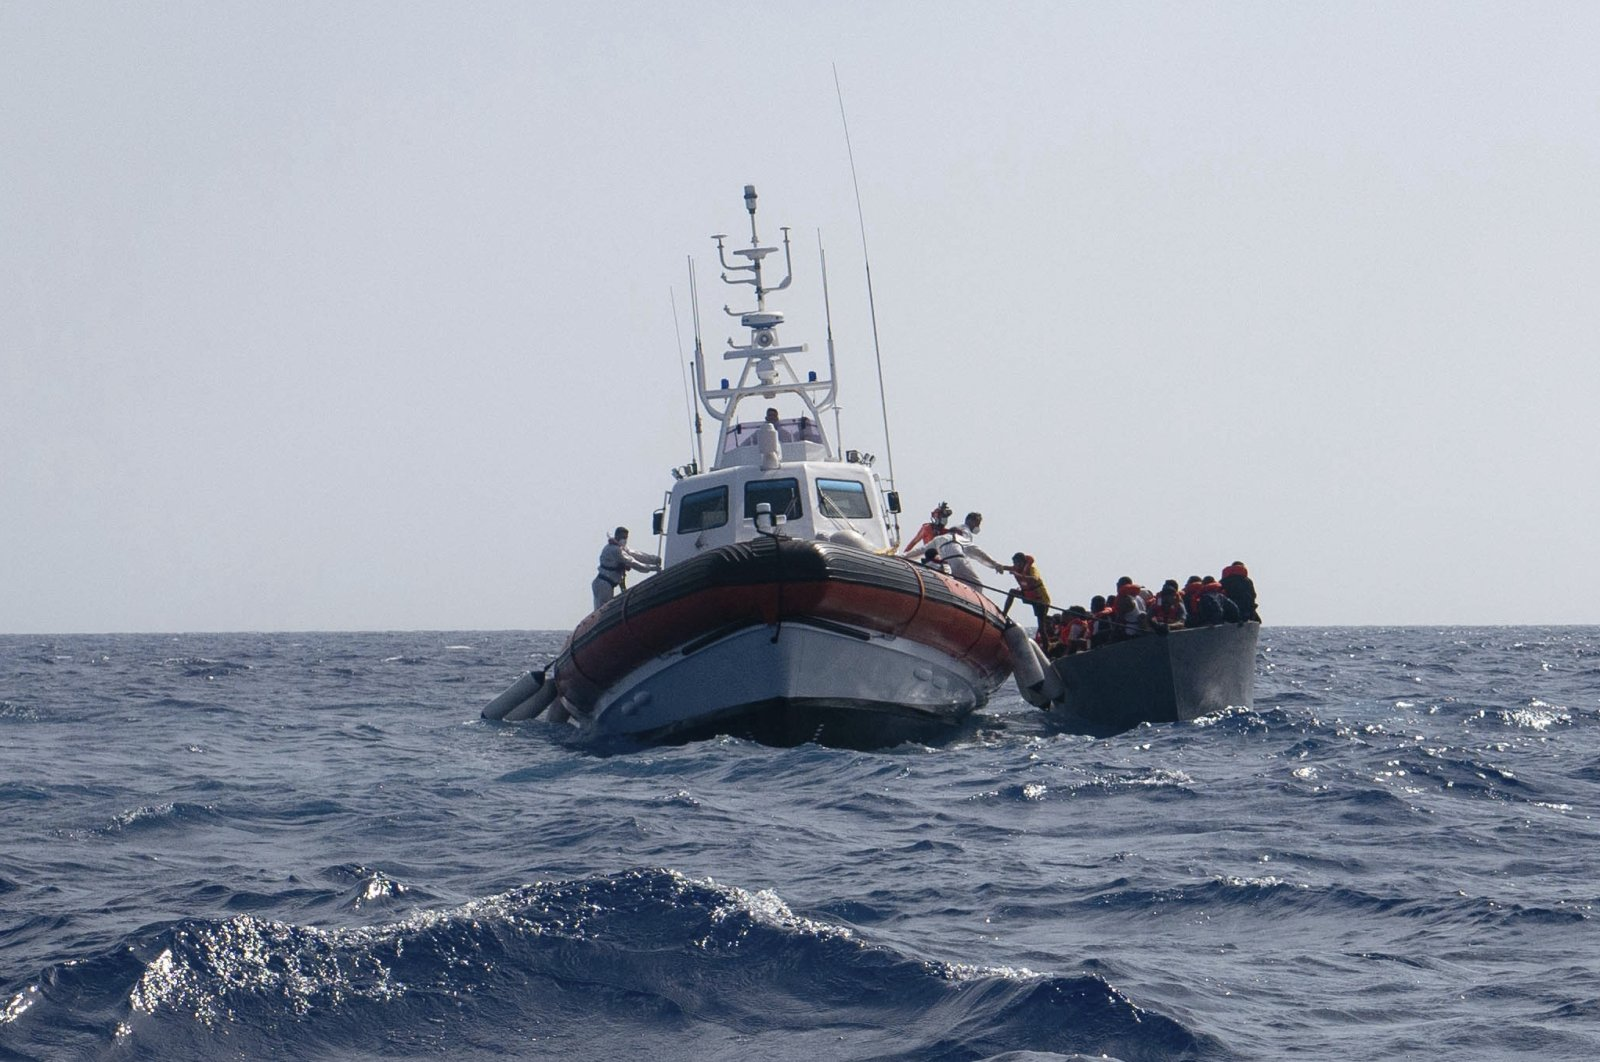 A boat overcrowded with migrants is being rescued by German charity boat Sea-Watch 3 in the Mediterranean sea, Aug. 2, 2021. (Sea-Watch.org via AP)